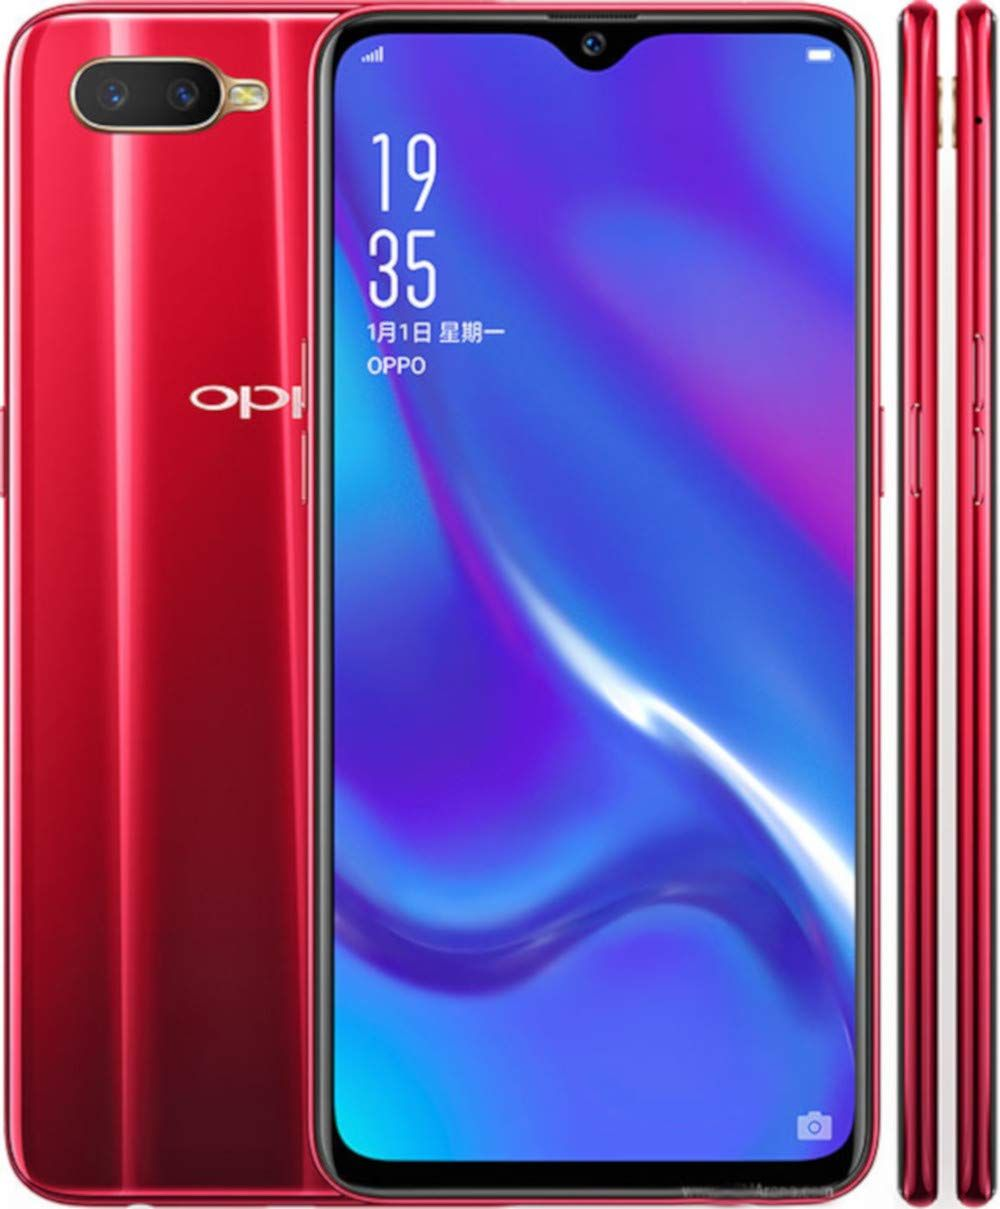 064ac66ccdb Original Oppo K1 4G+64G Mobile Phone 4G LTE Android 8.1 - Best Buy Online